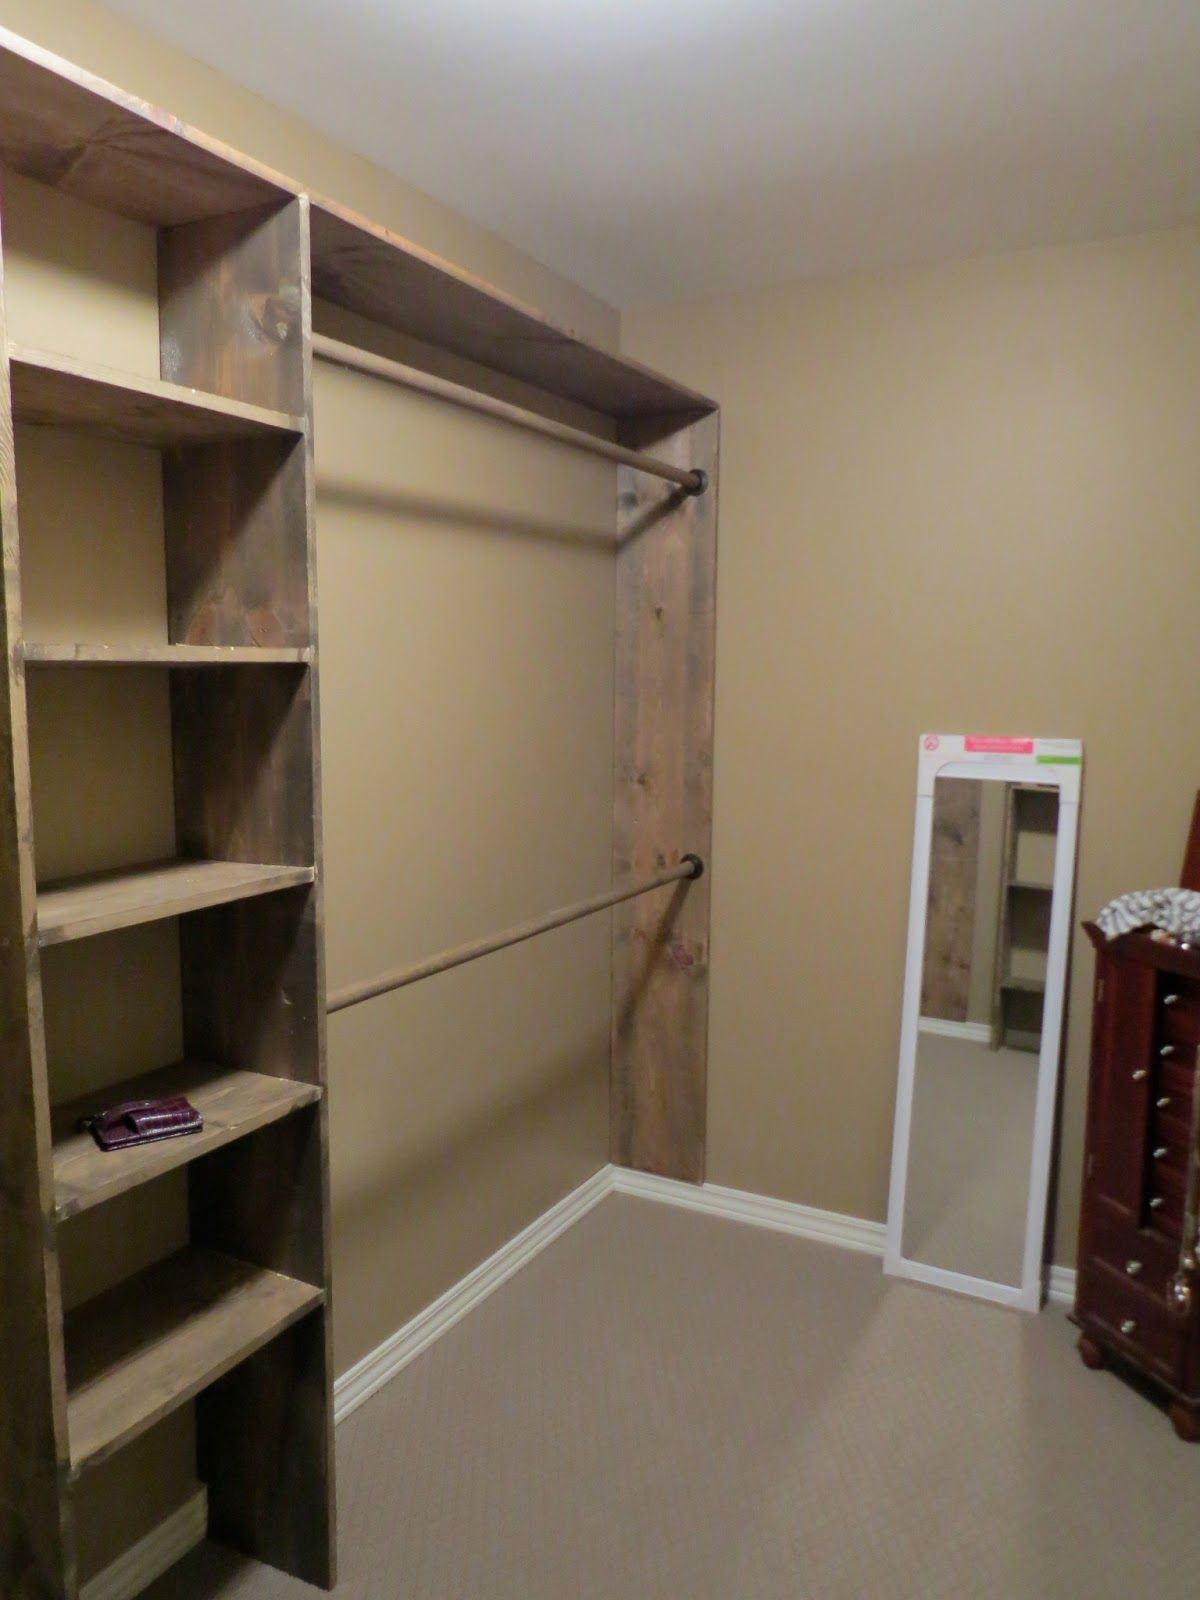 Let 39 s just build a house walk in closets no more living for Adding a walk in closet